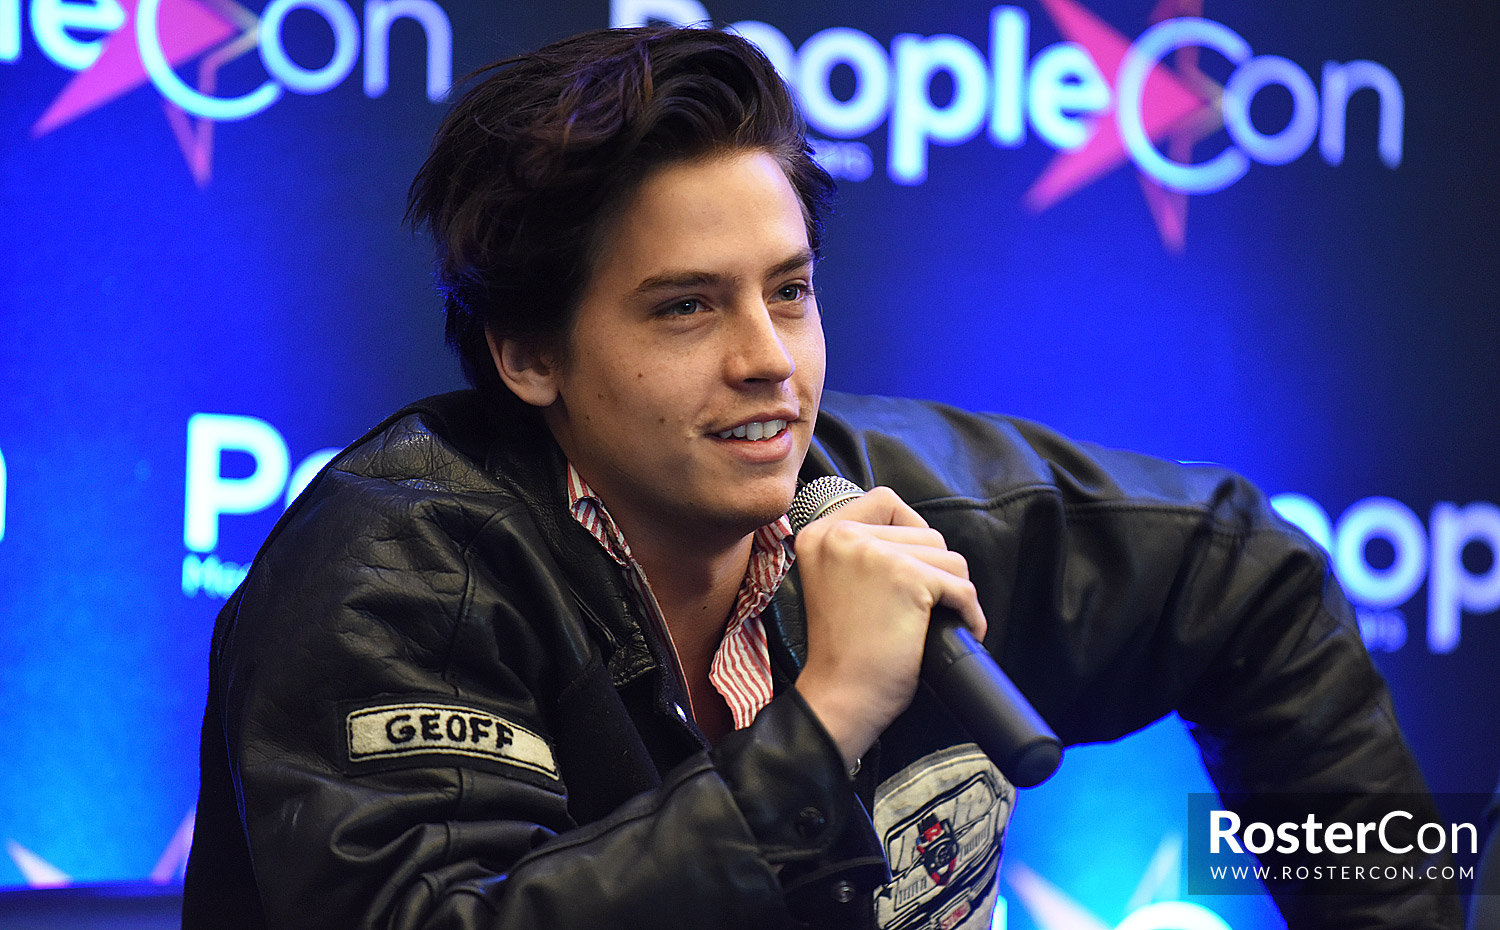 Cole sprouse roster con kristyandbryce Choice Image